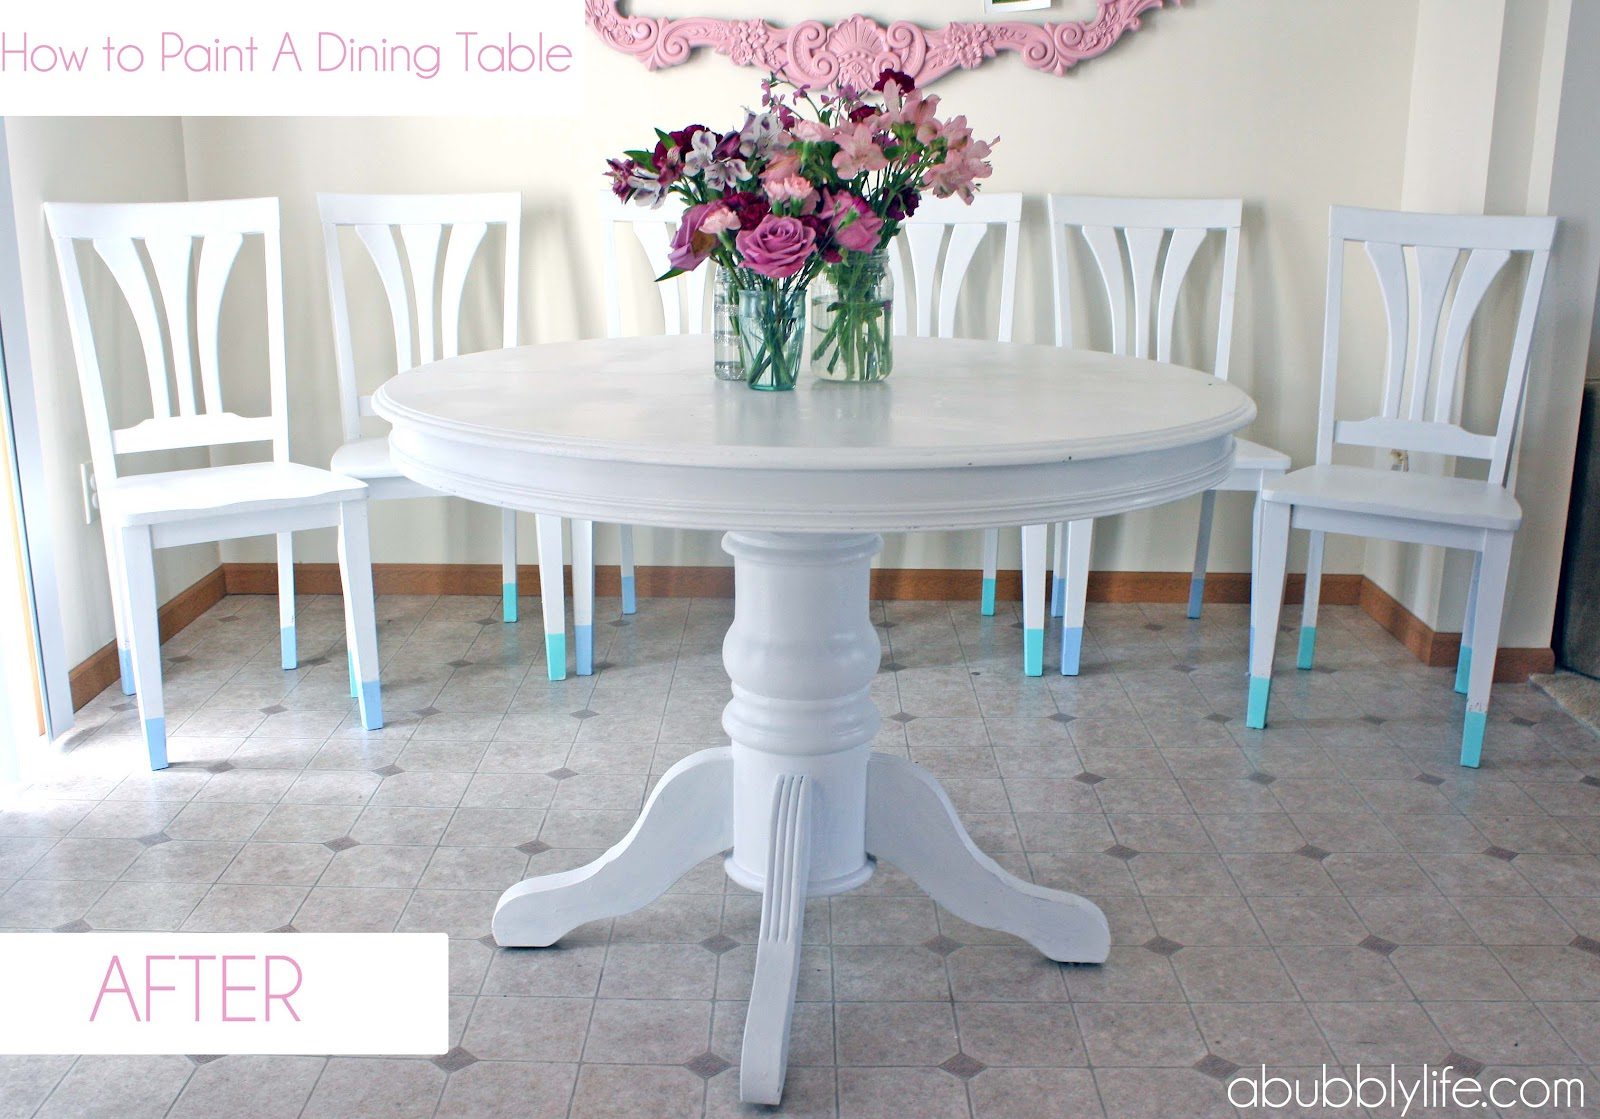 a bubbly lifehow to paint a dining room table & chairs! makeover